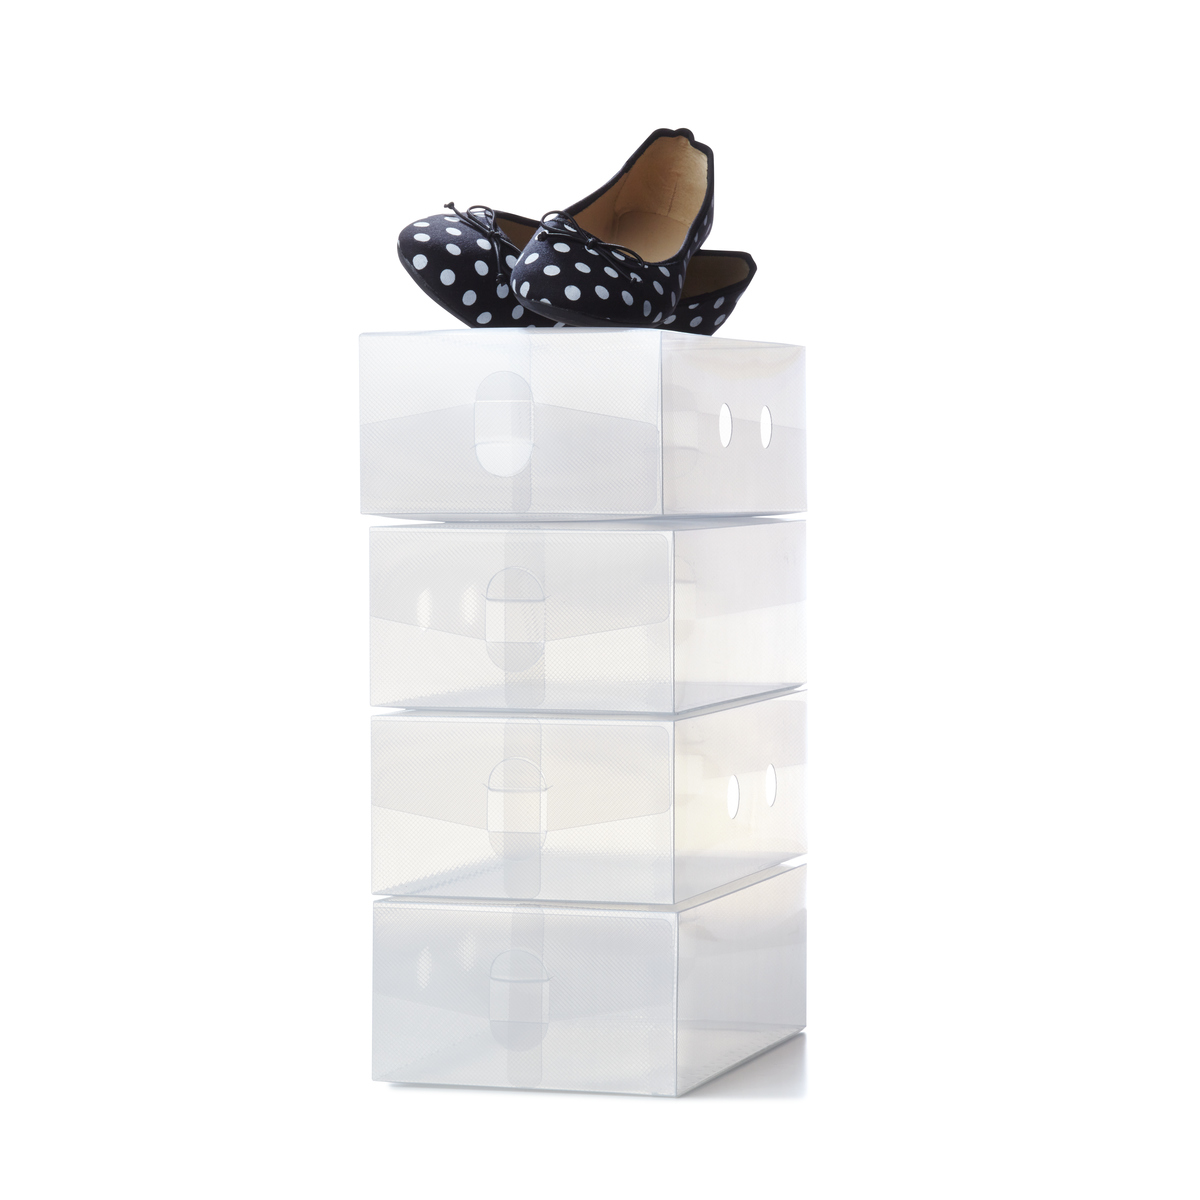 Shoe Box Australia Shoe Boxes Set Of 4 Kmart